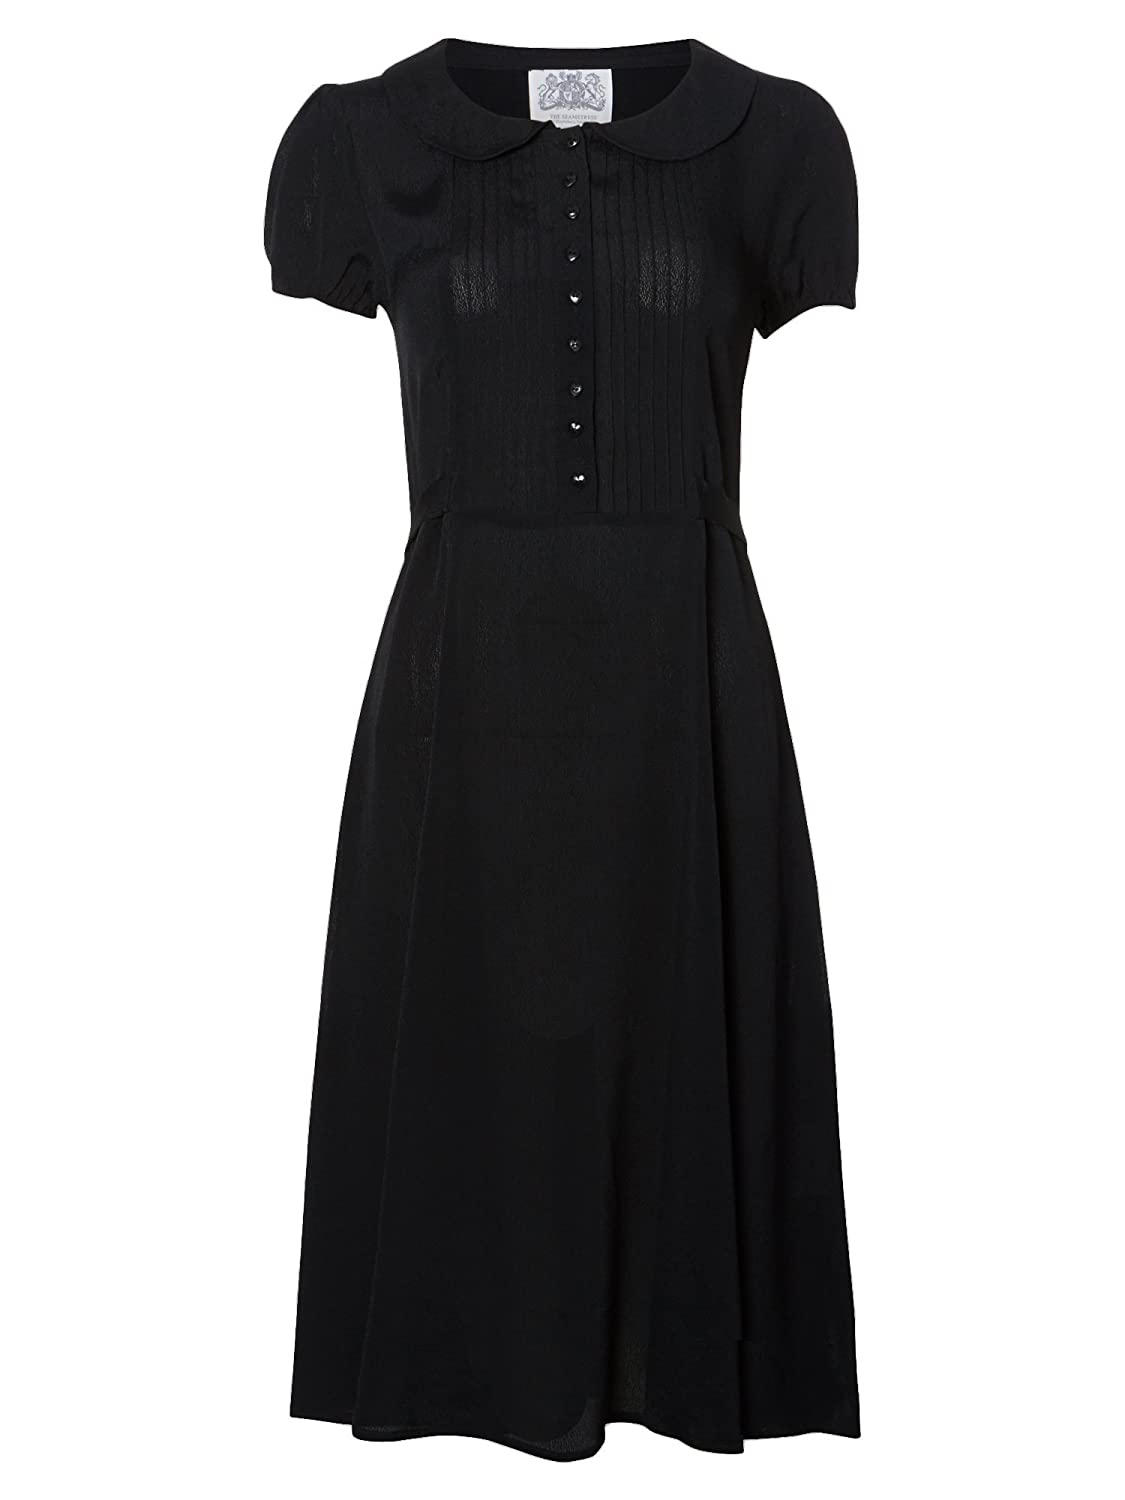 1940s Fashion Advice for Short Women 1940s Authentic Vintage Inspired Dorothy Dress in Black £79.00 AT vintagedancer.com